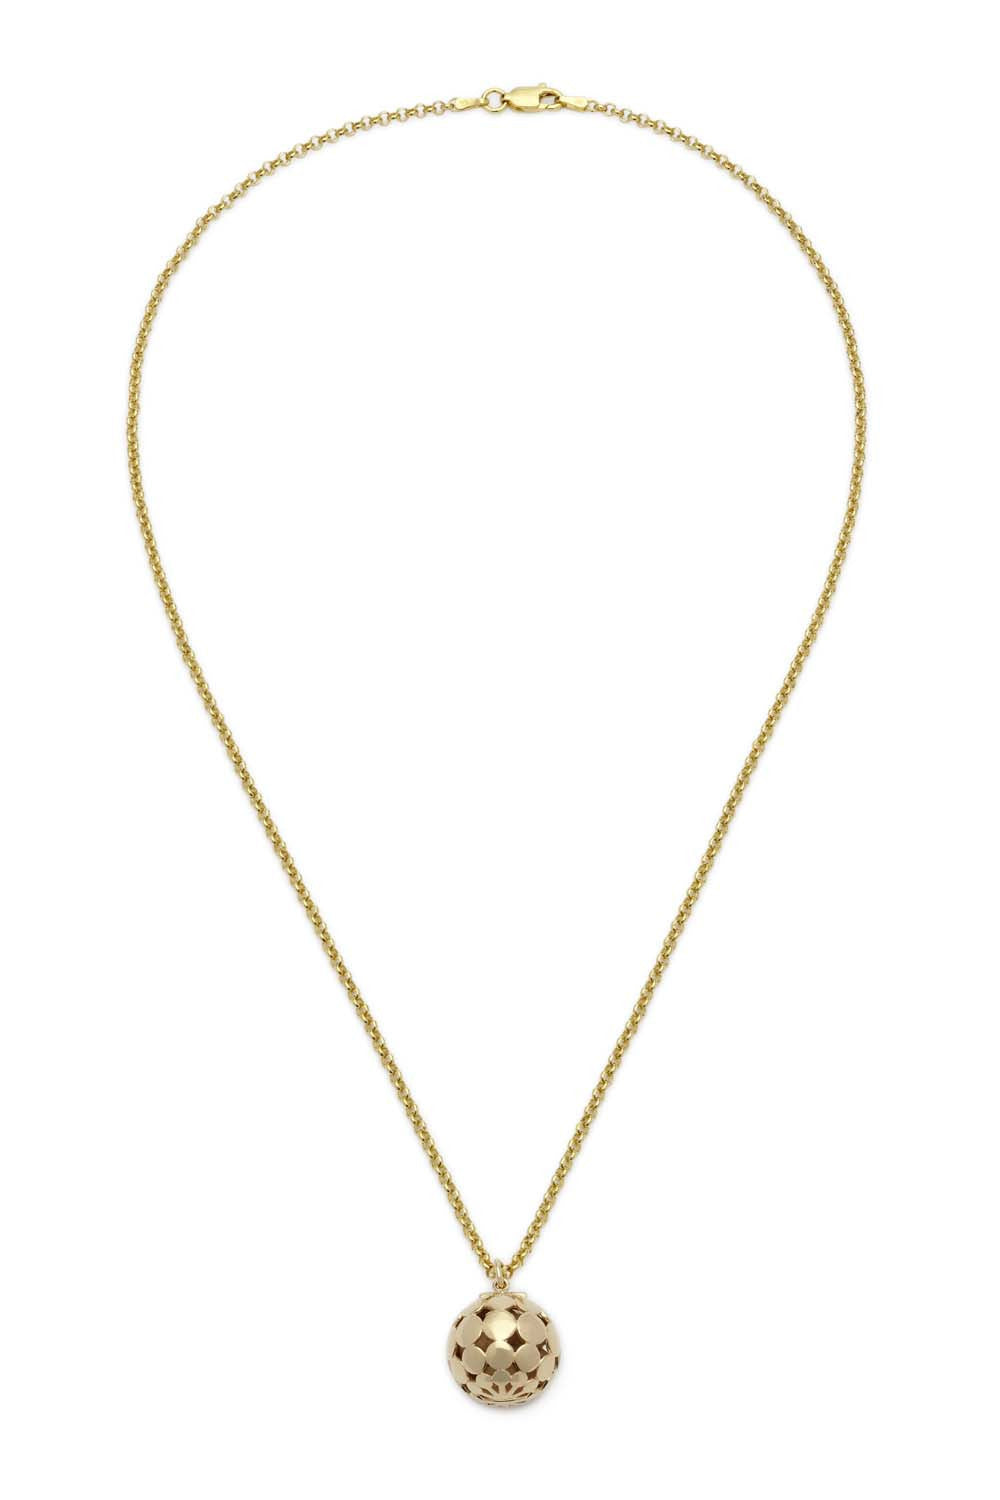 "30"" Hemisphere Necklace - 14K"